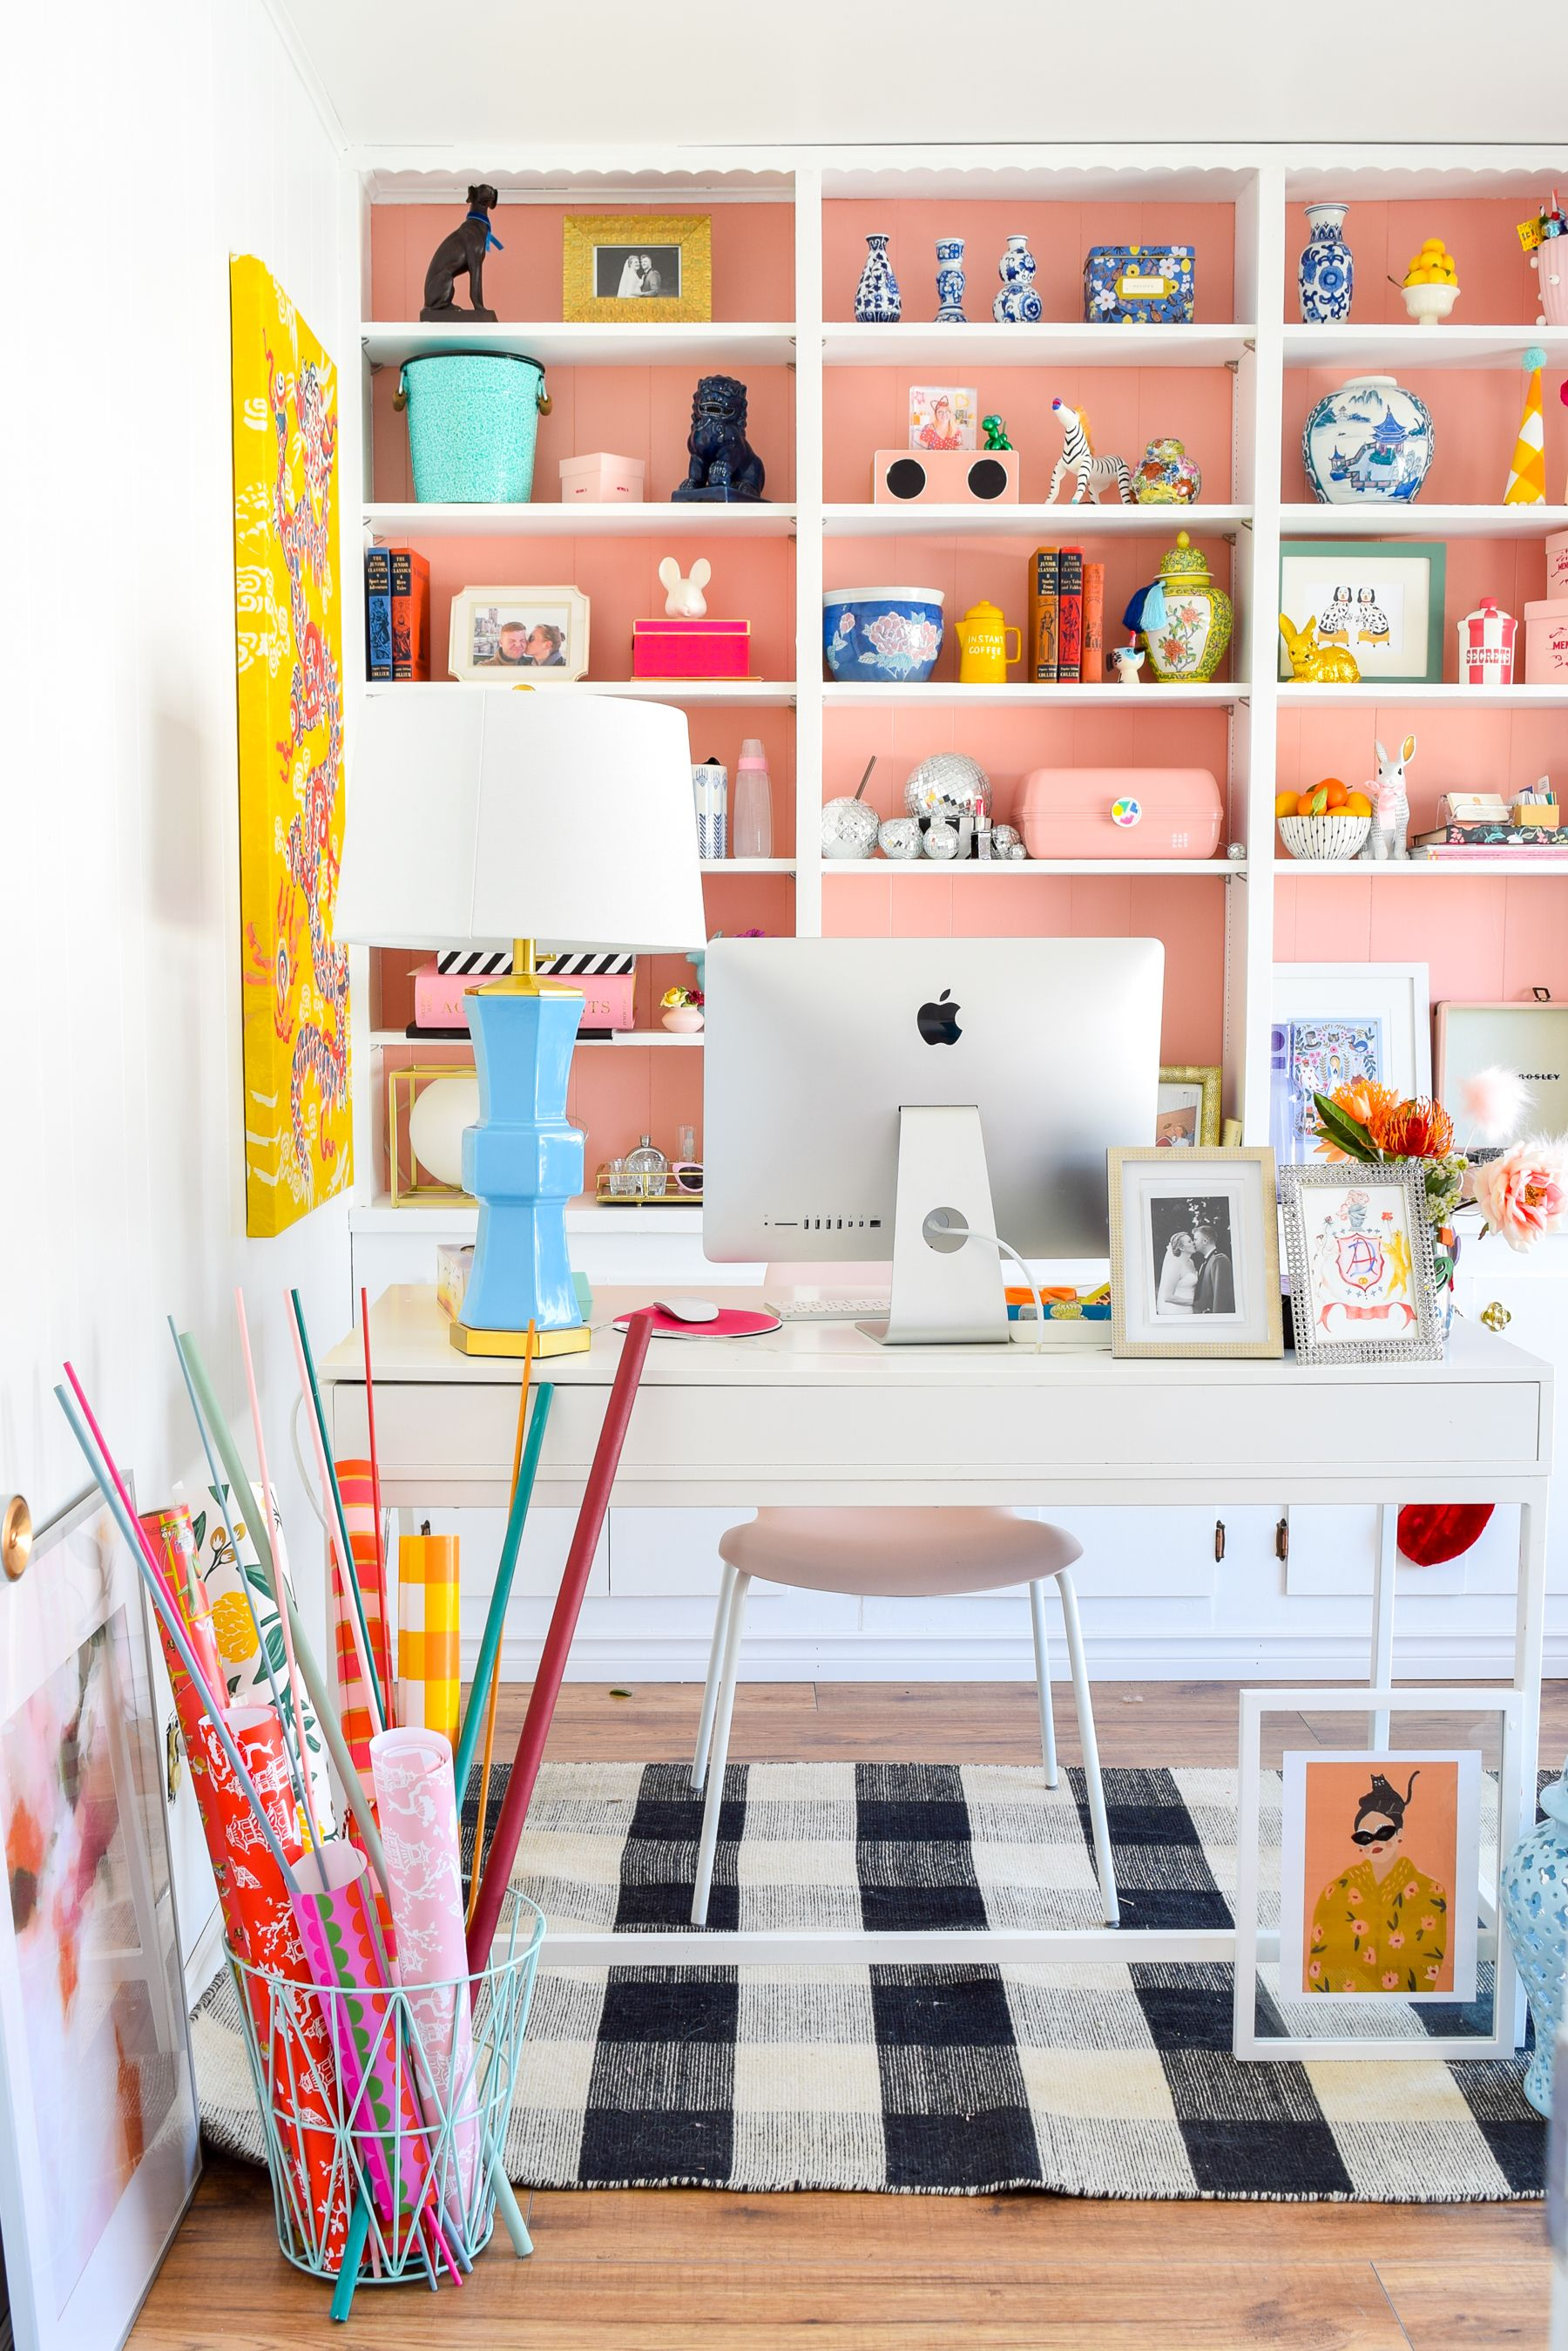 How To Turn A Small Space Into A Dream Craft Room Workspace On A Budget T Moore Home Design Diy And Affordable Decorating Ideas Pink Home Offices Craft Room